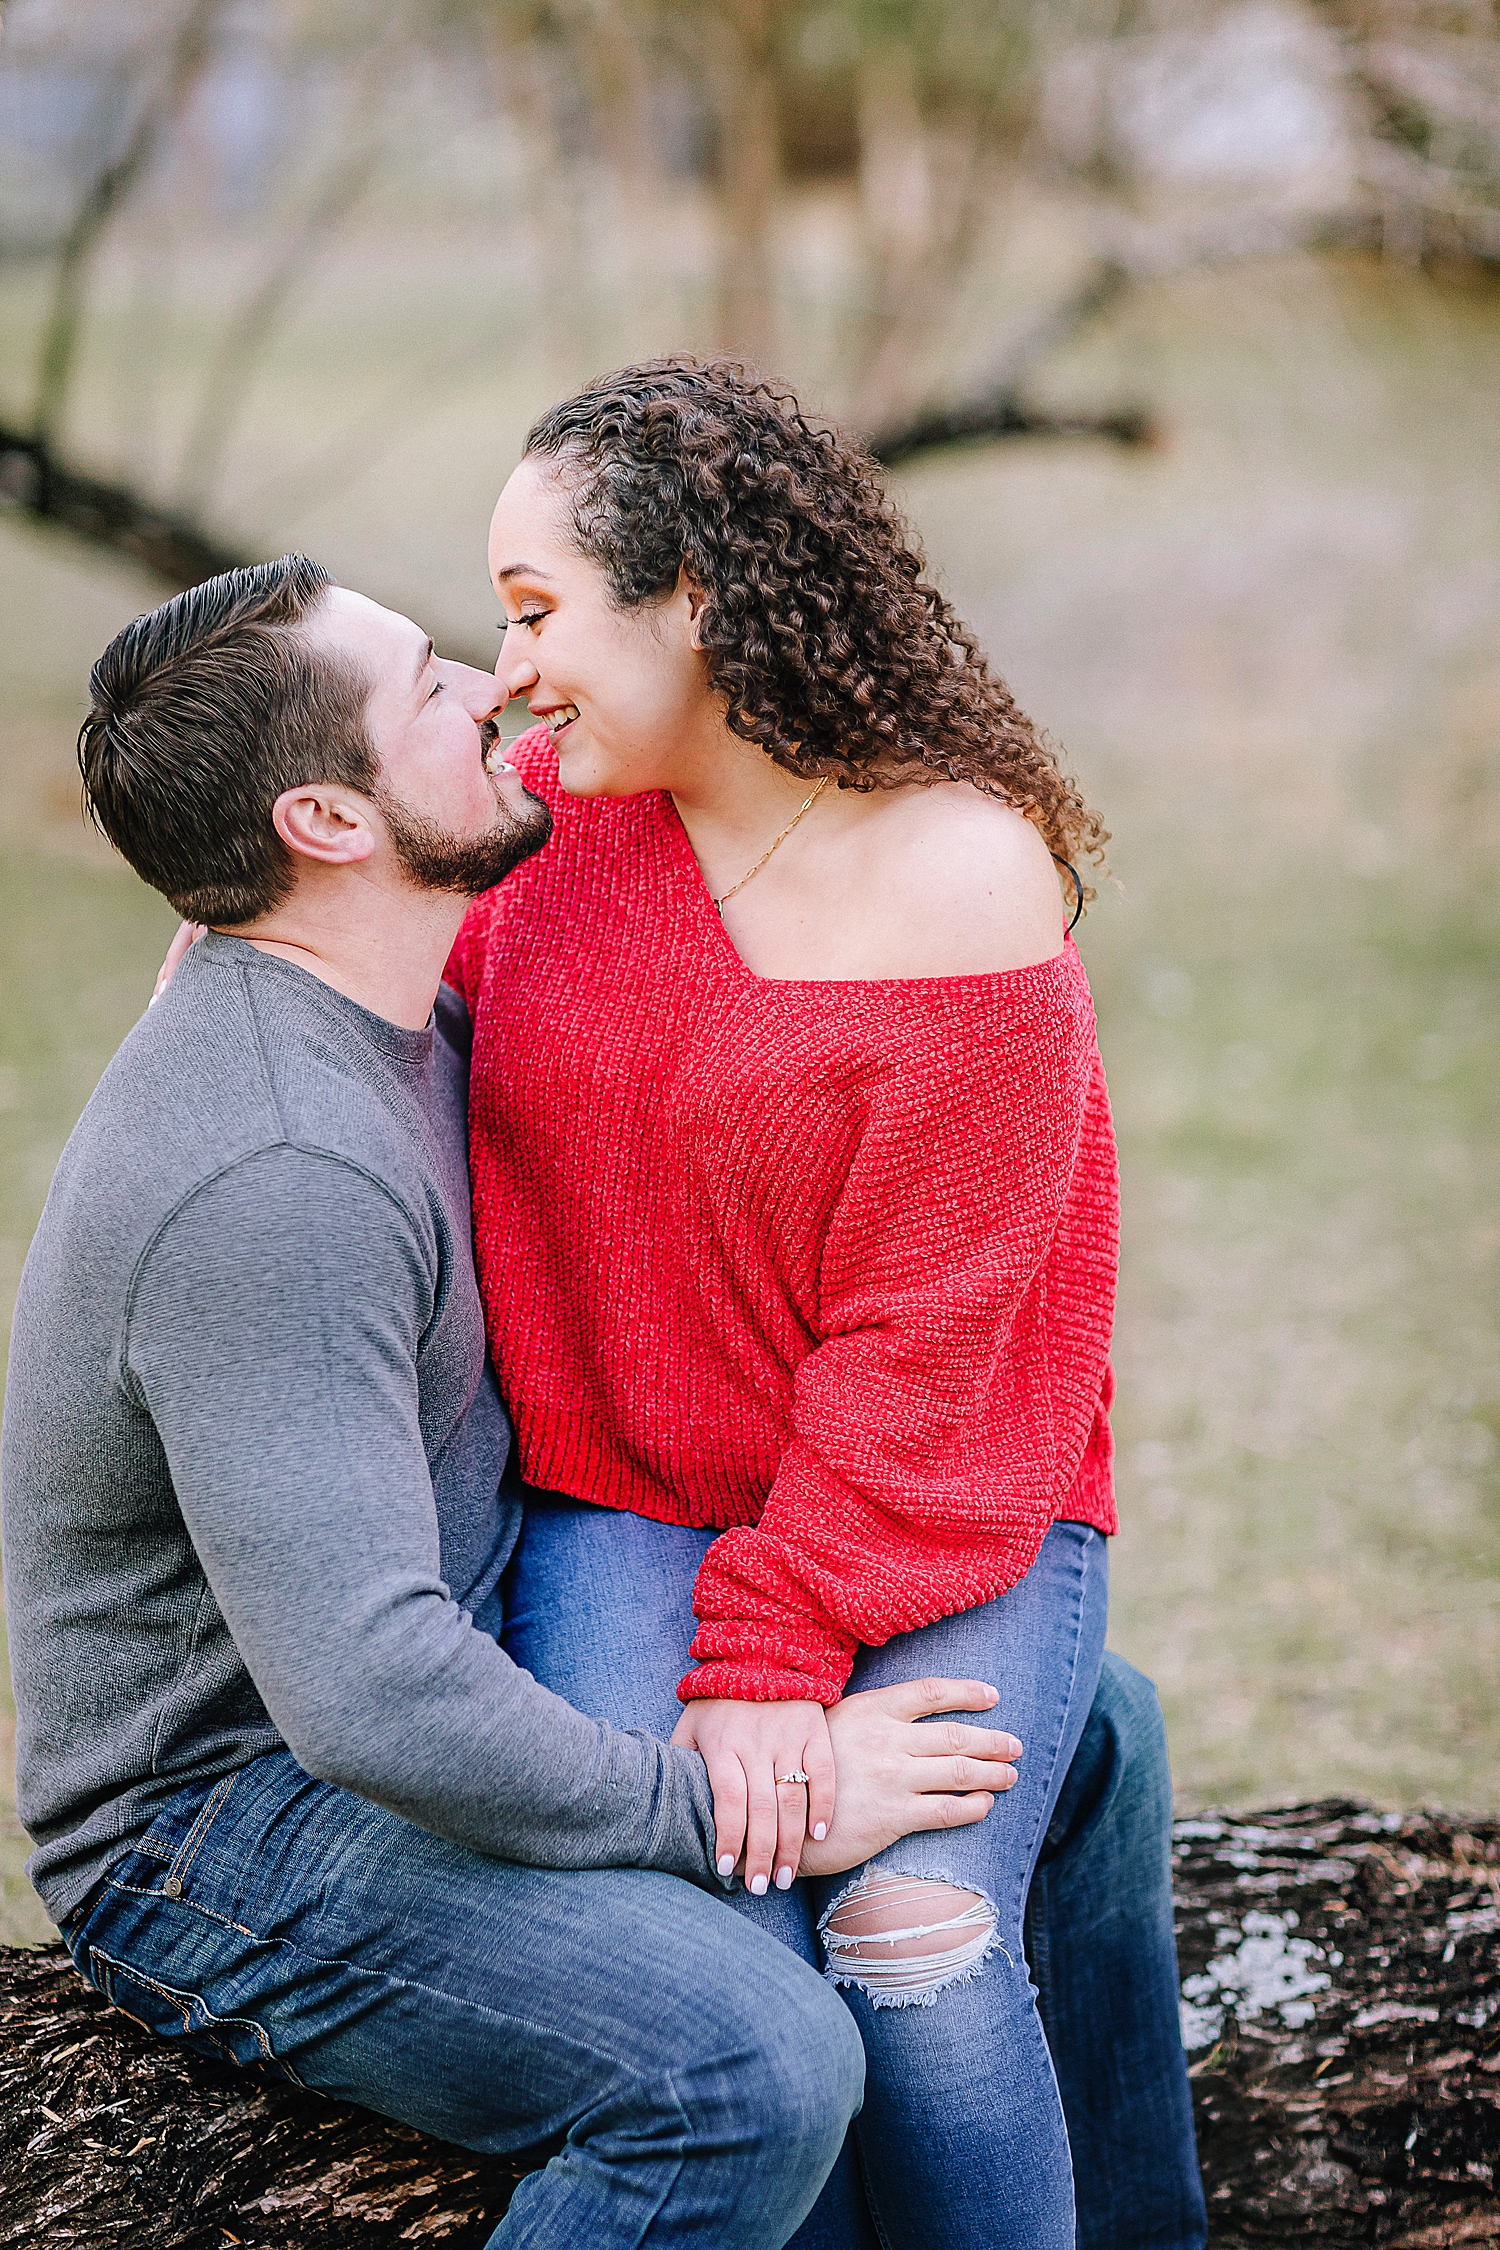 Engagement-photo-session-gruene-new-braunfels-texas-carly-barton-photography_0022.jpg